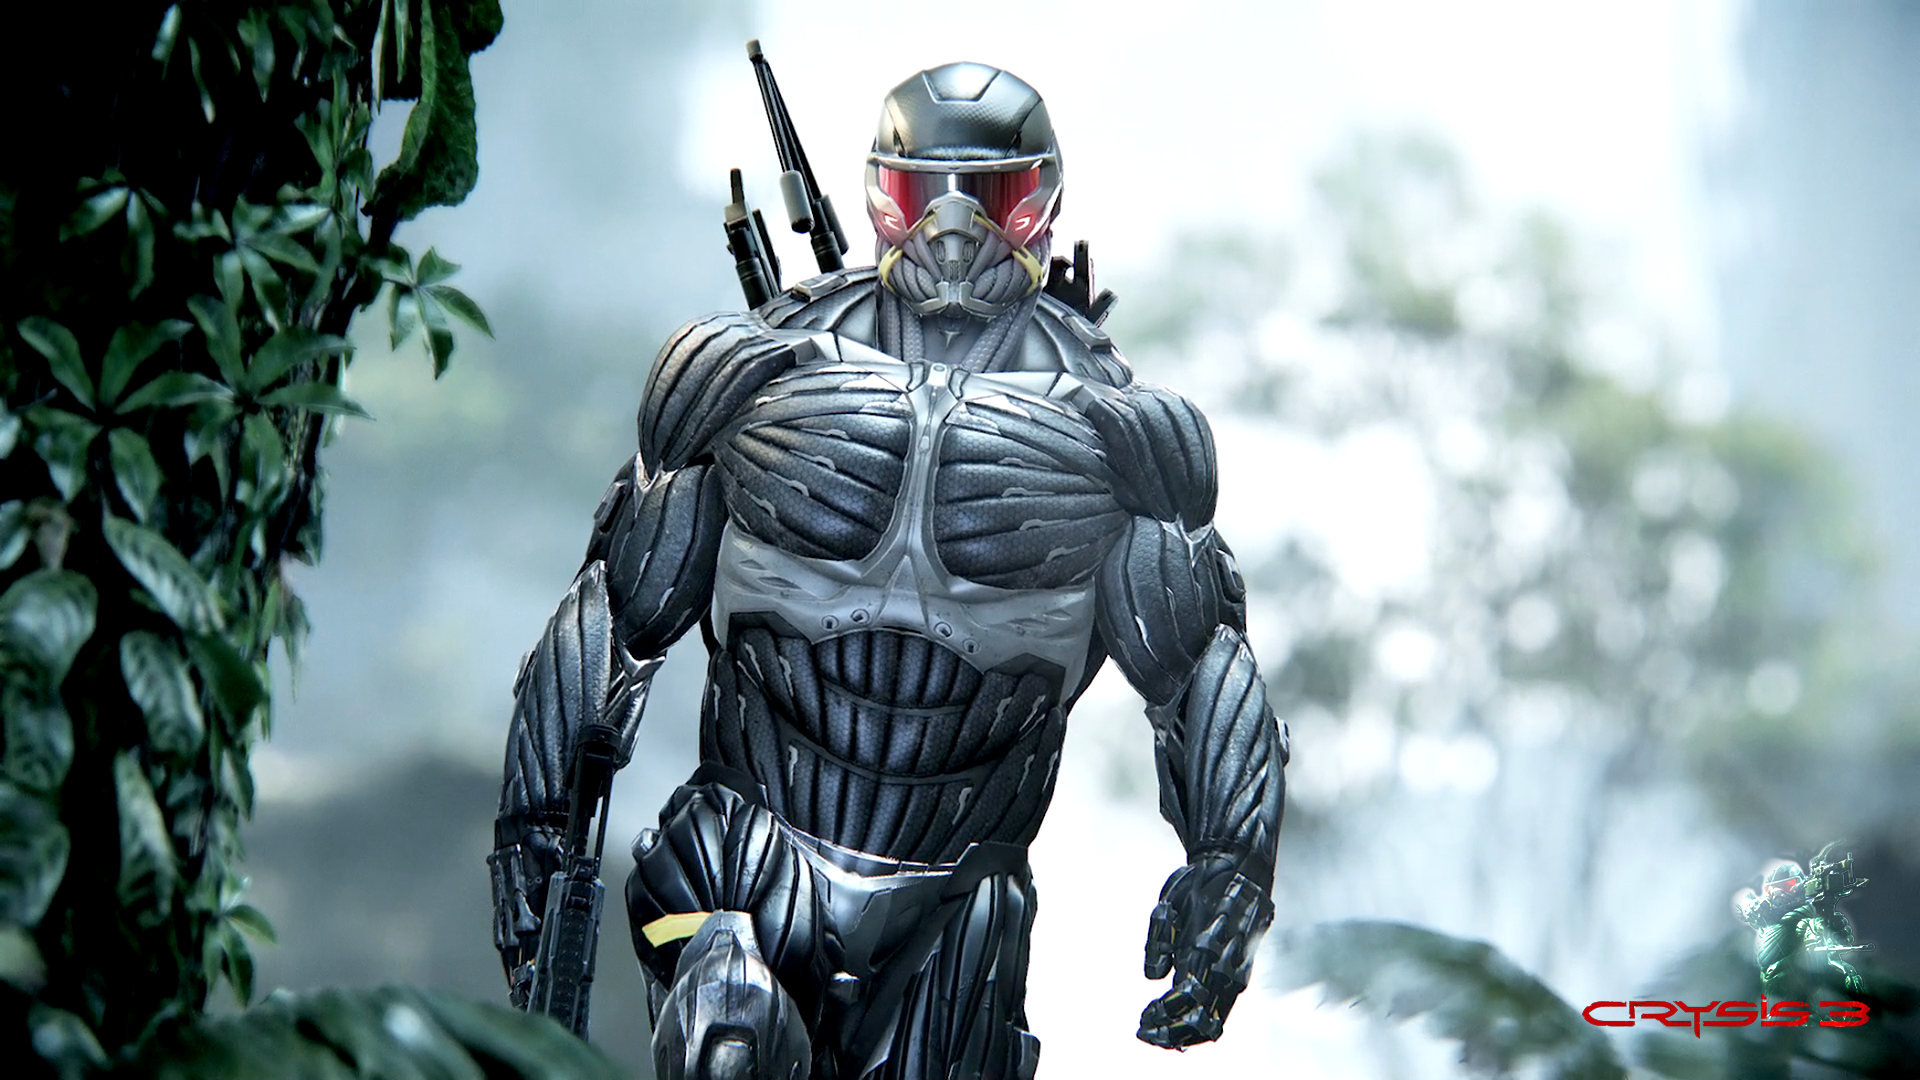 Crysis 3 Wallpaper High Resolution